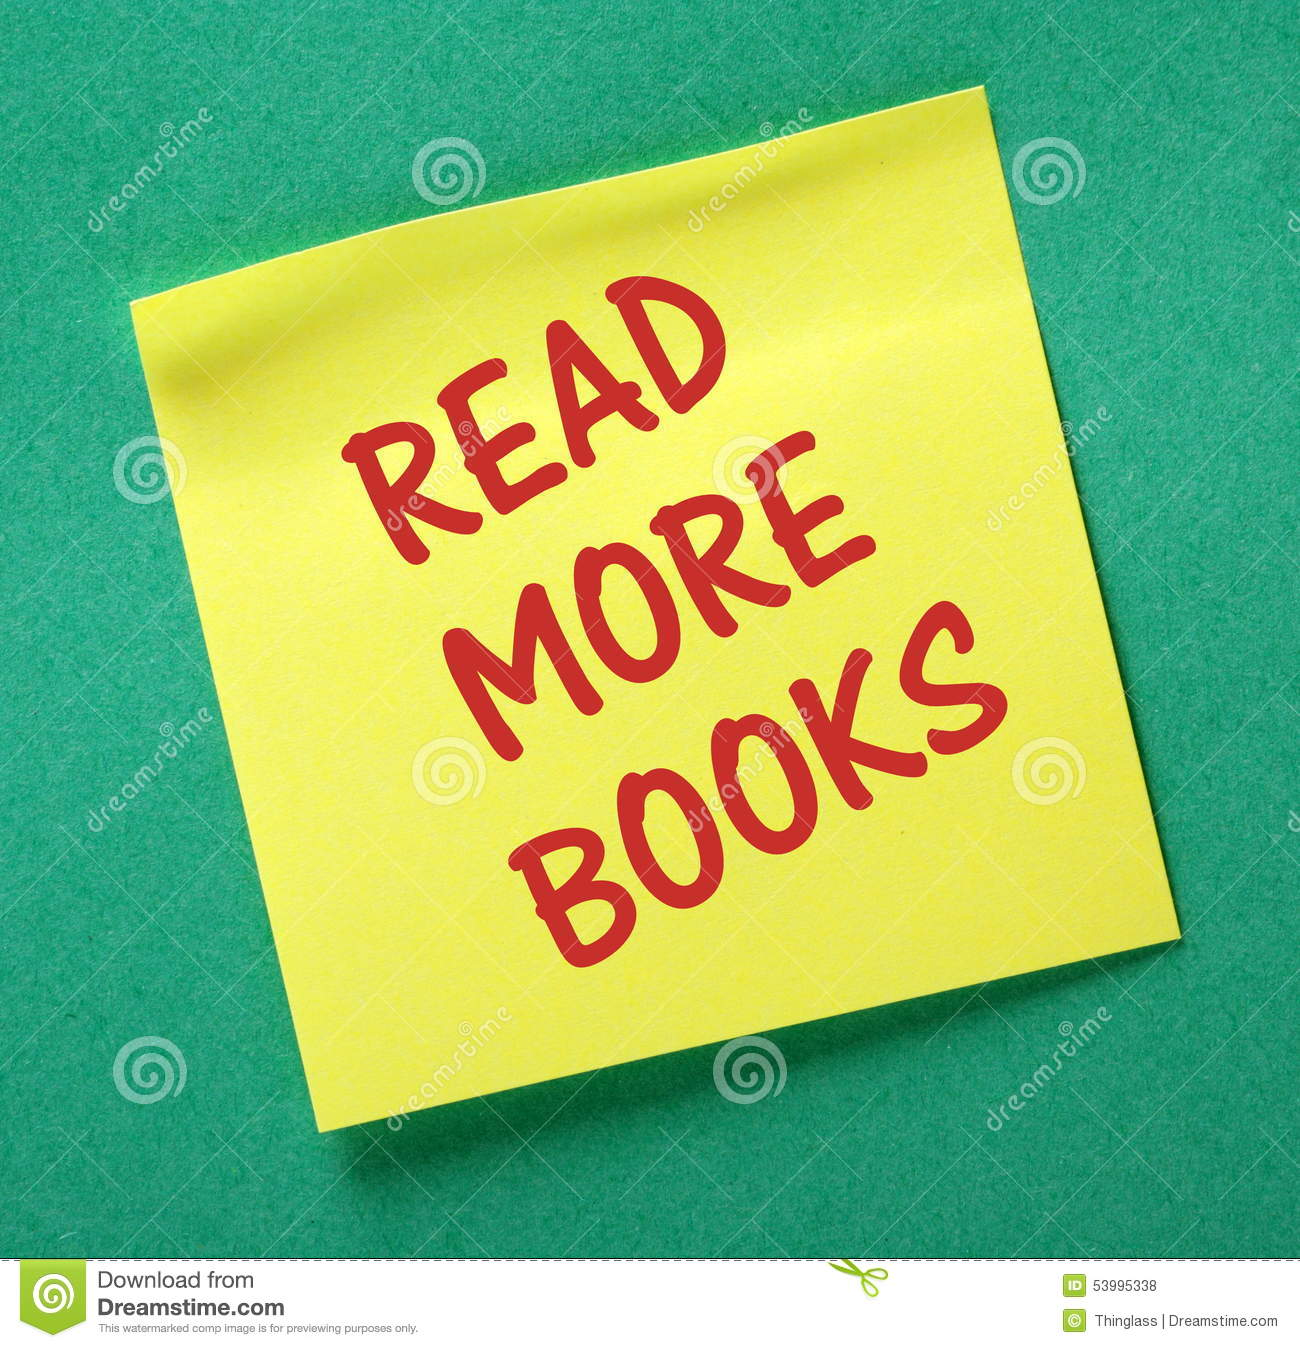 Read more books reminder stock photo image of growth for More com